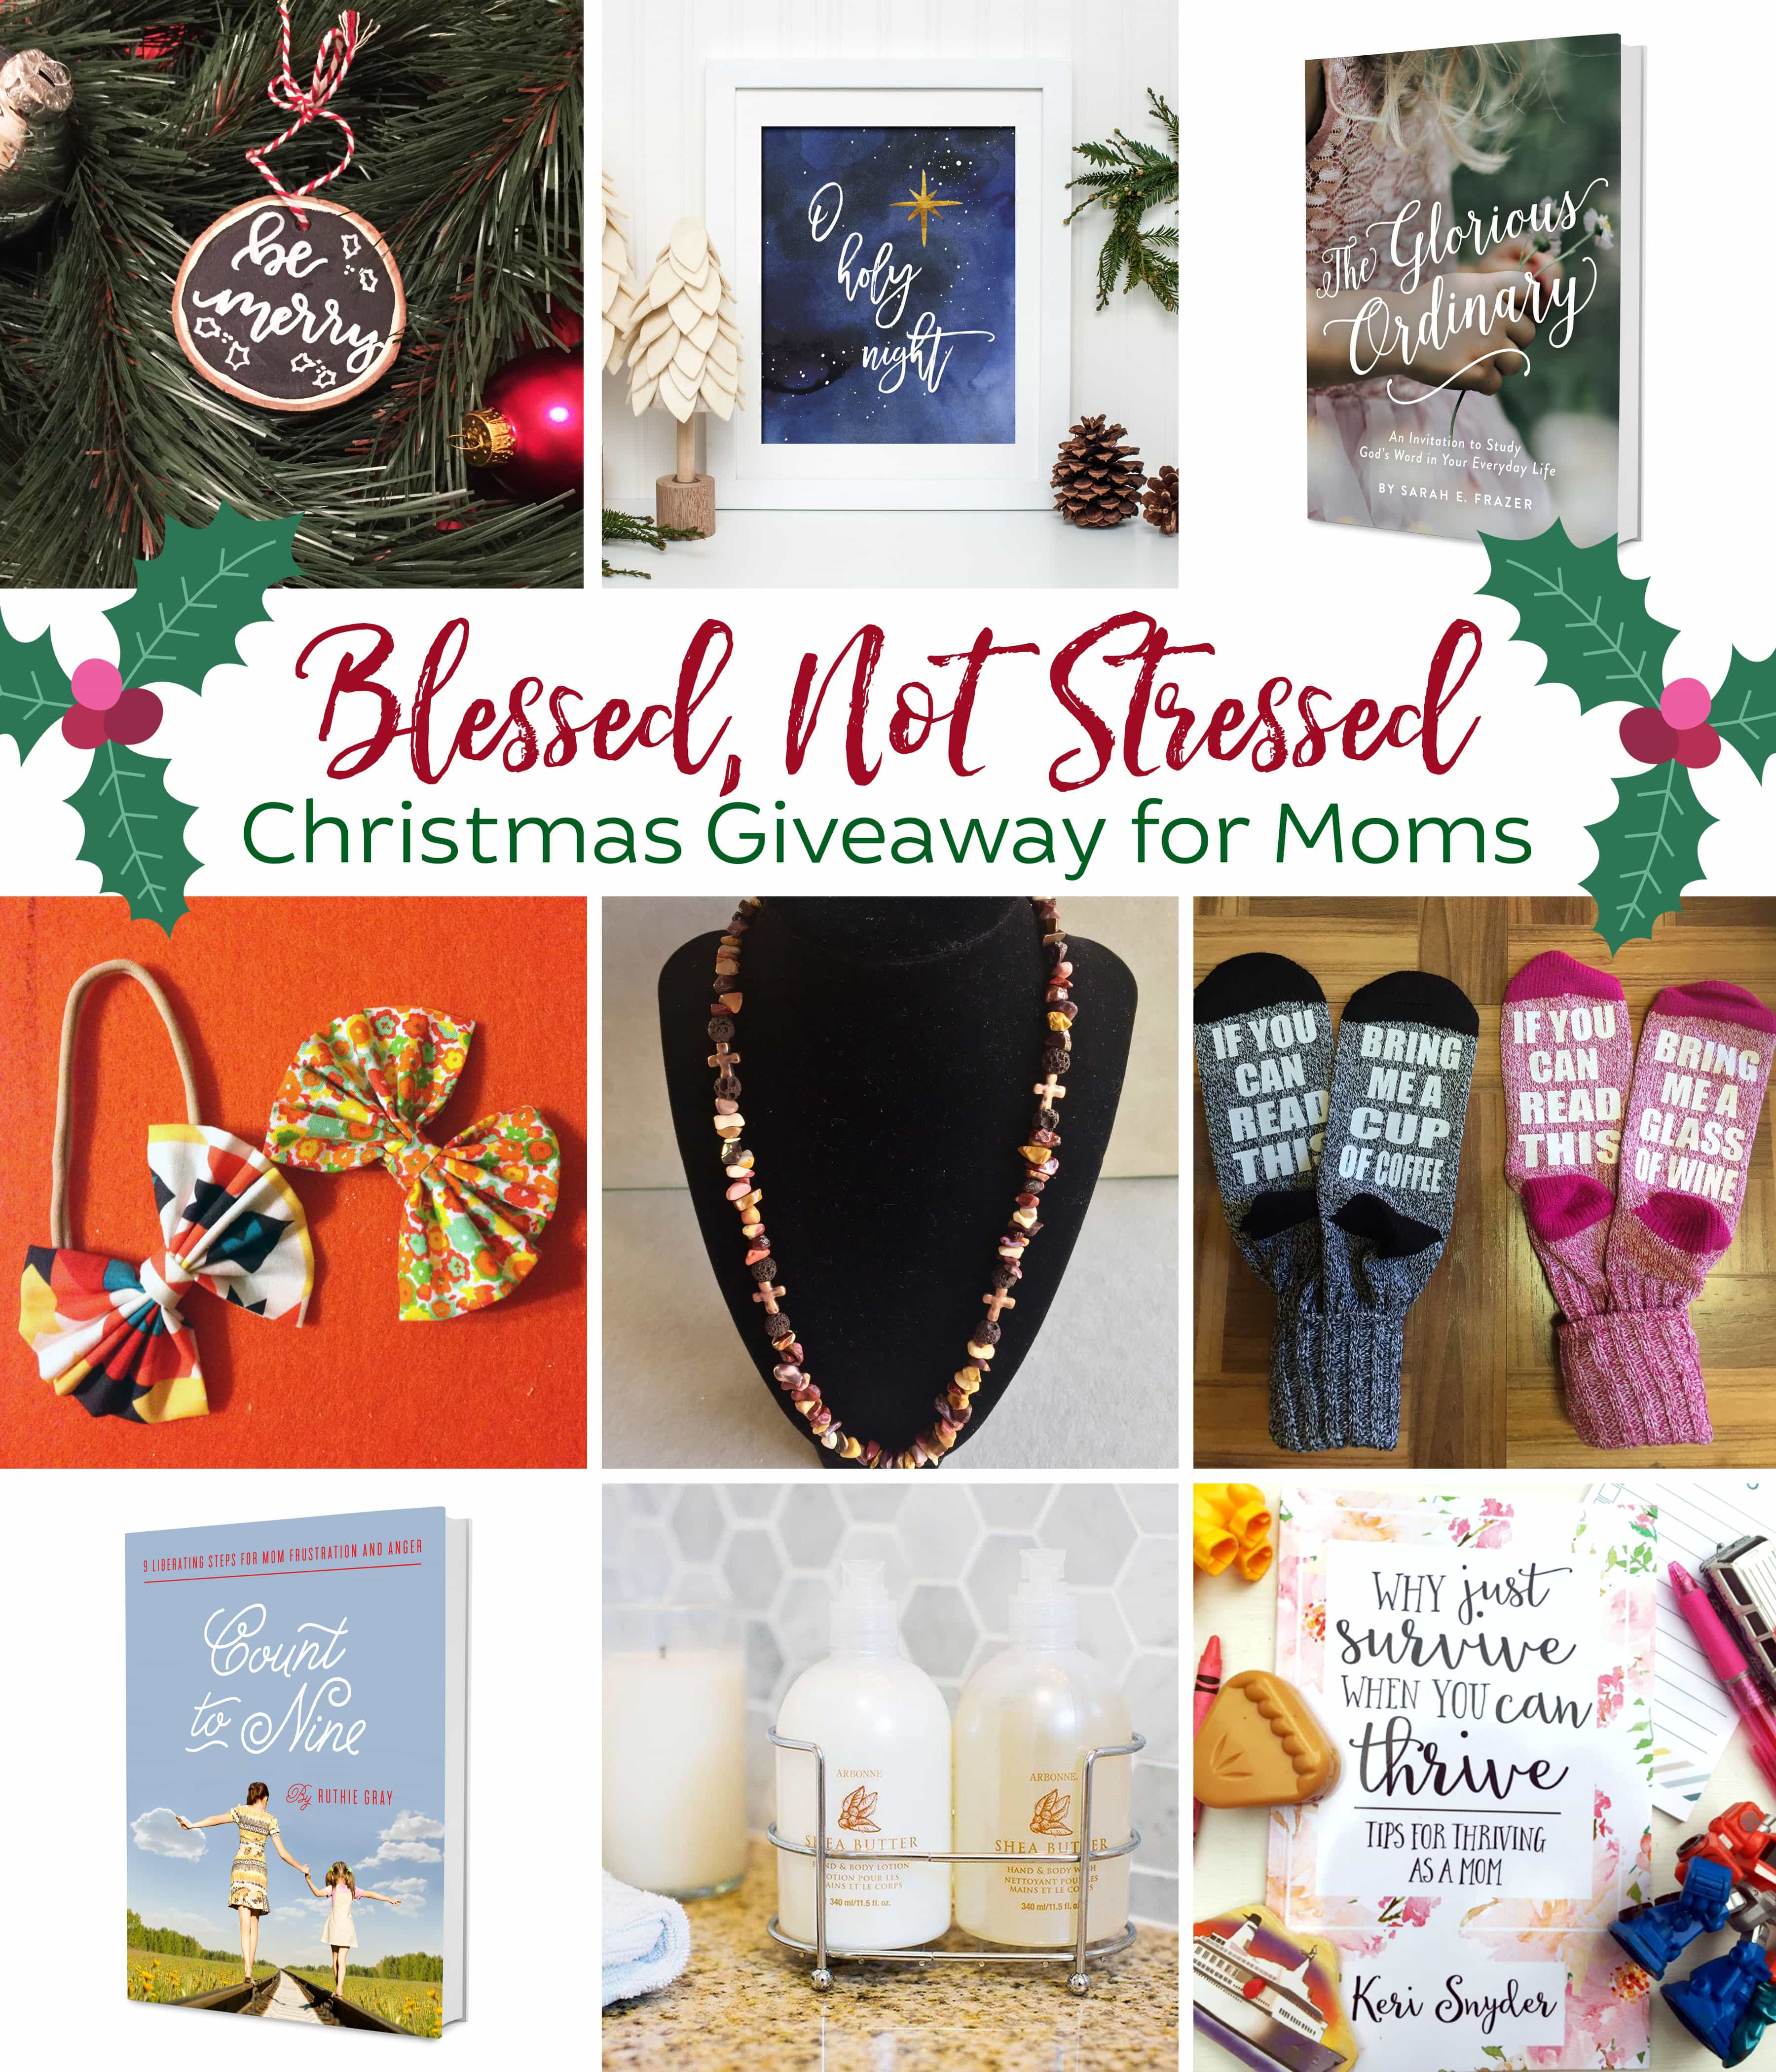 Blessed, not stressed Christmas giveaway for moms - Christmas prints, books on motherhood, and more! Runs December 1-7